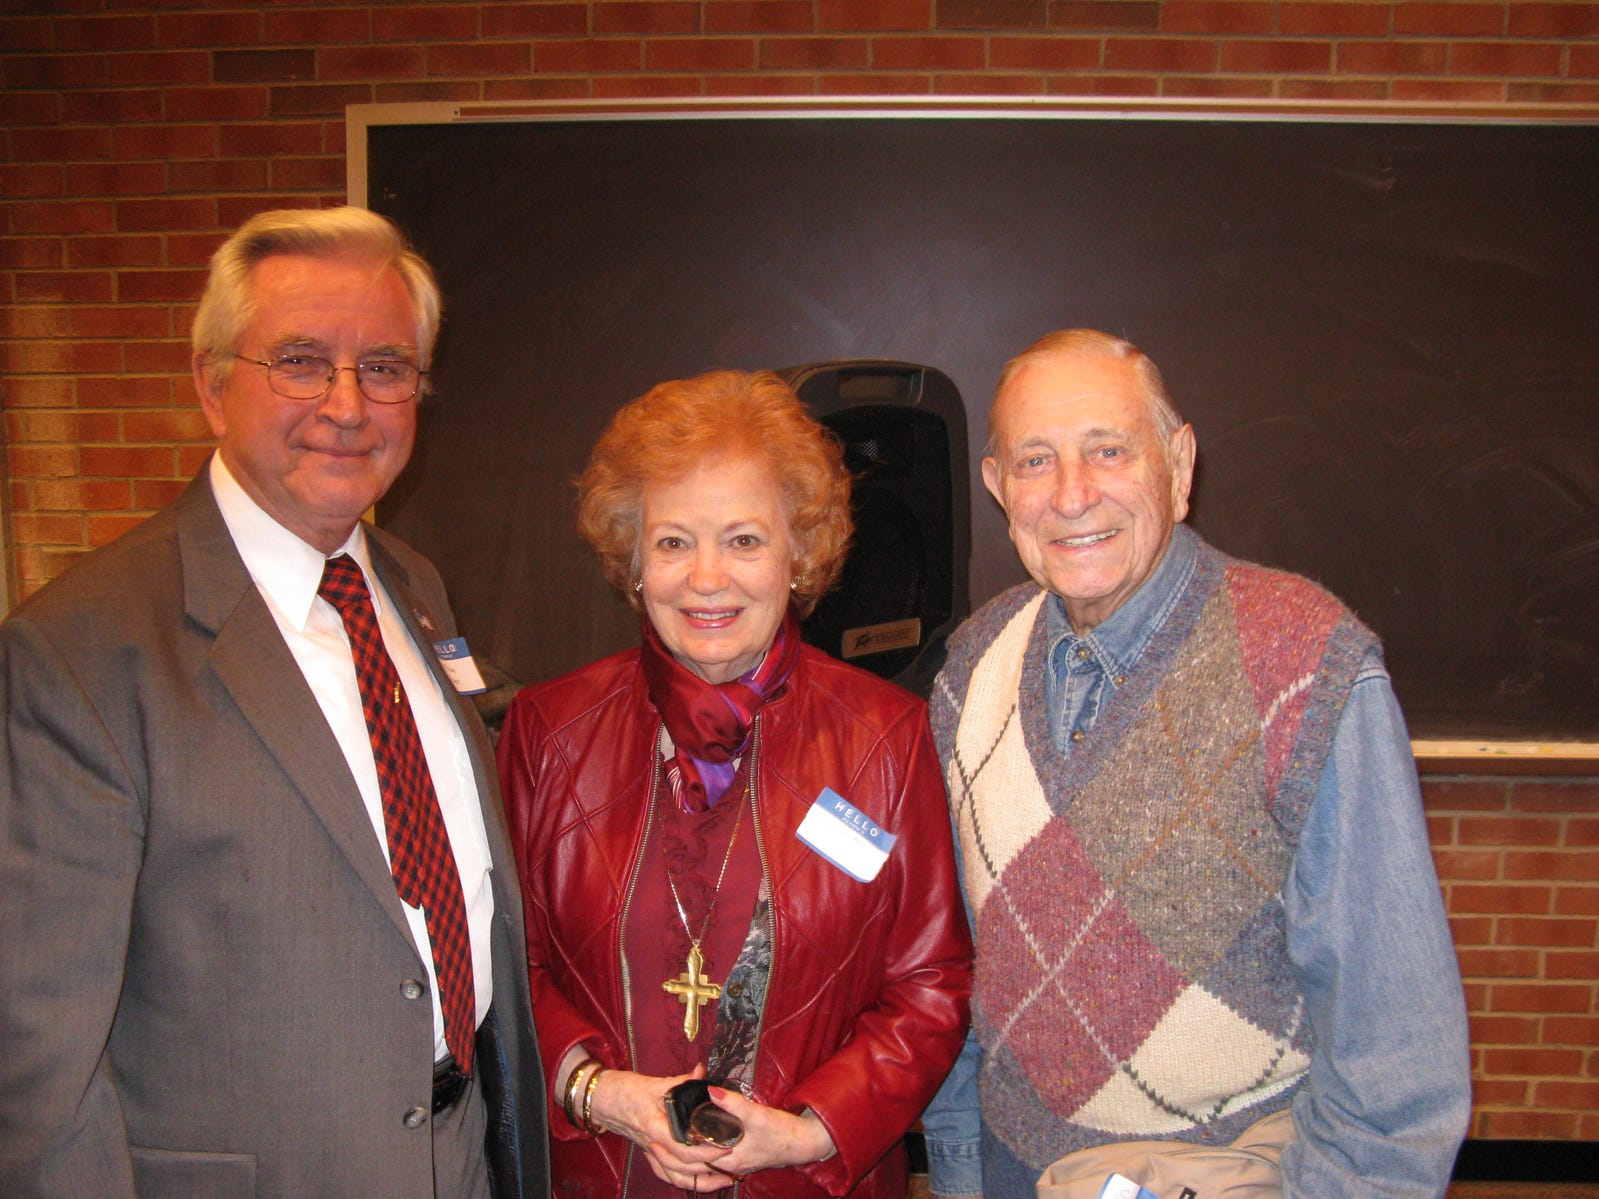 William T. Turner of Hopkinsville, left, with Elizabeth Laida and John David Laida at a meeting of the Montgomery County Historical Society.